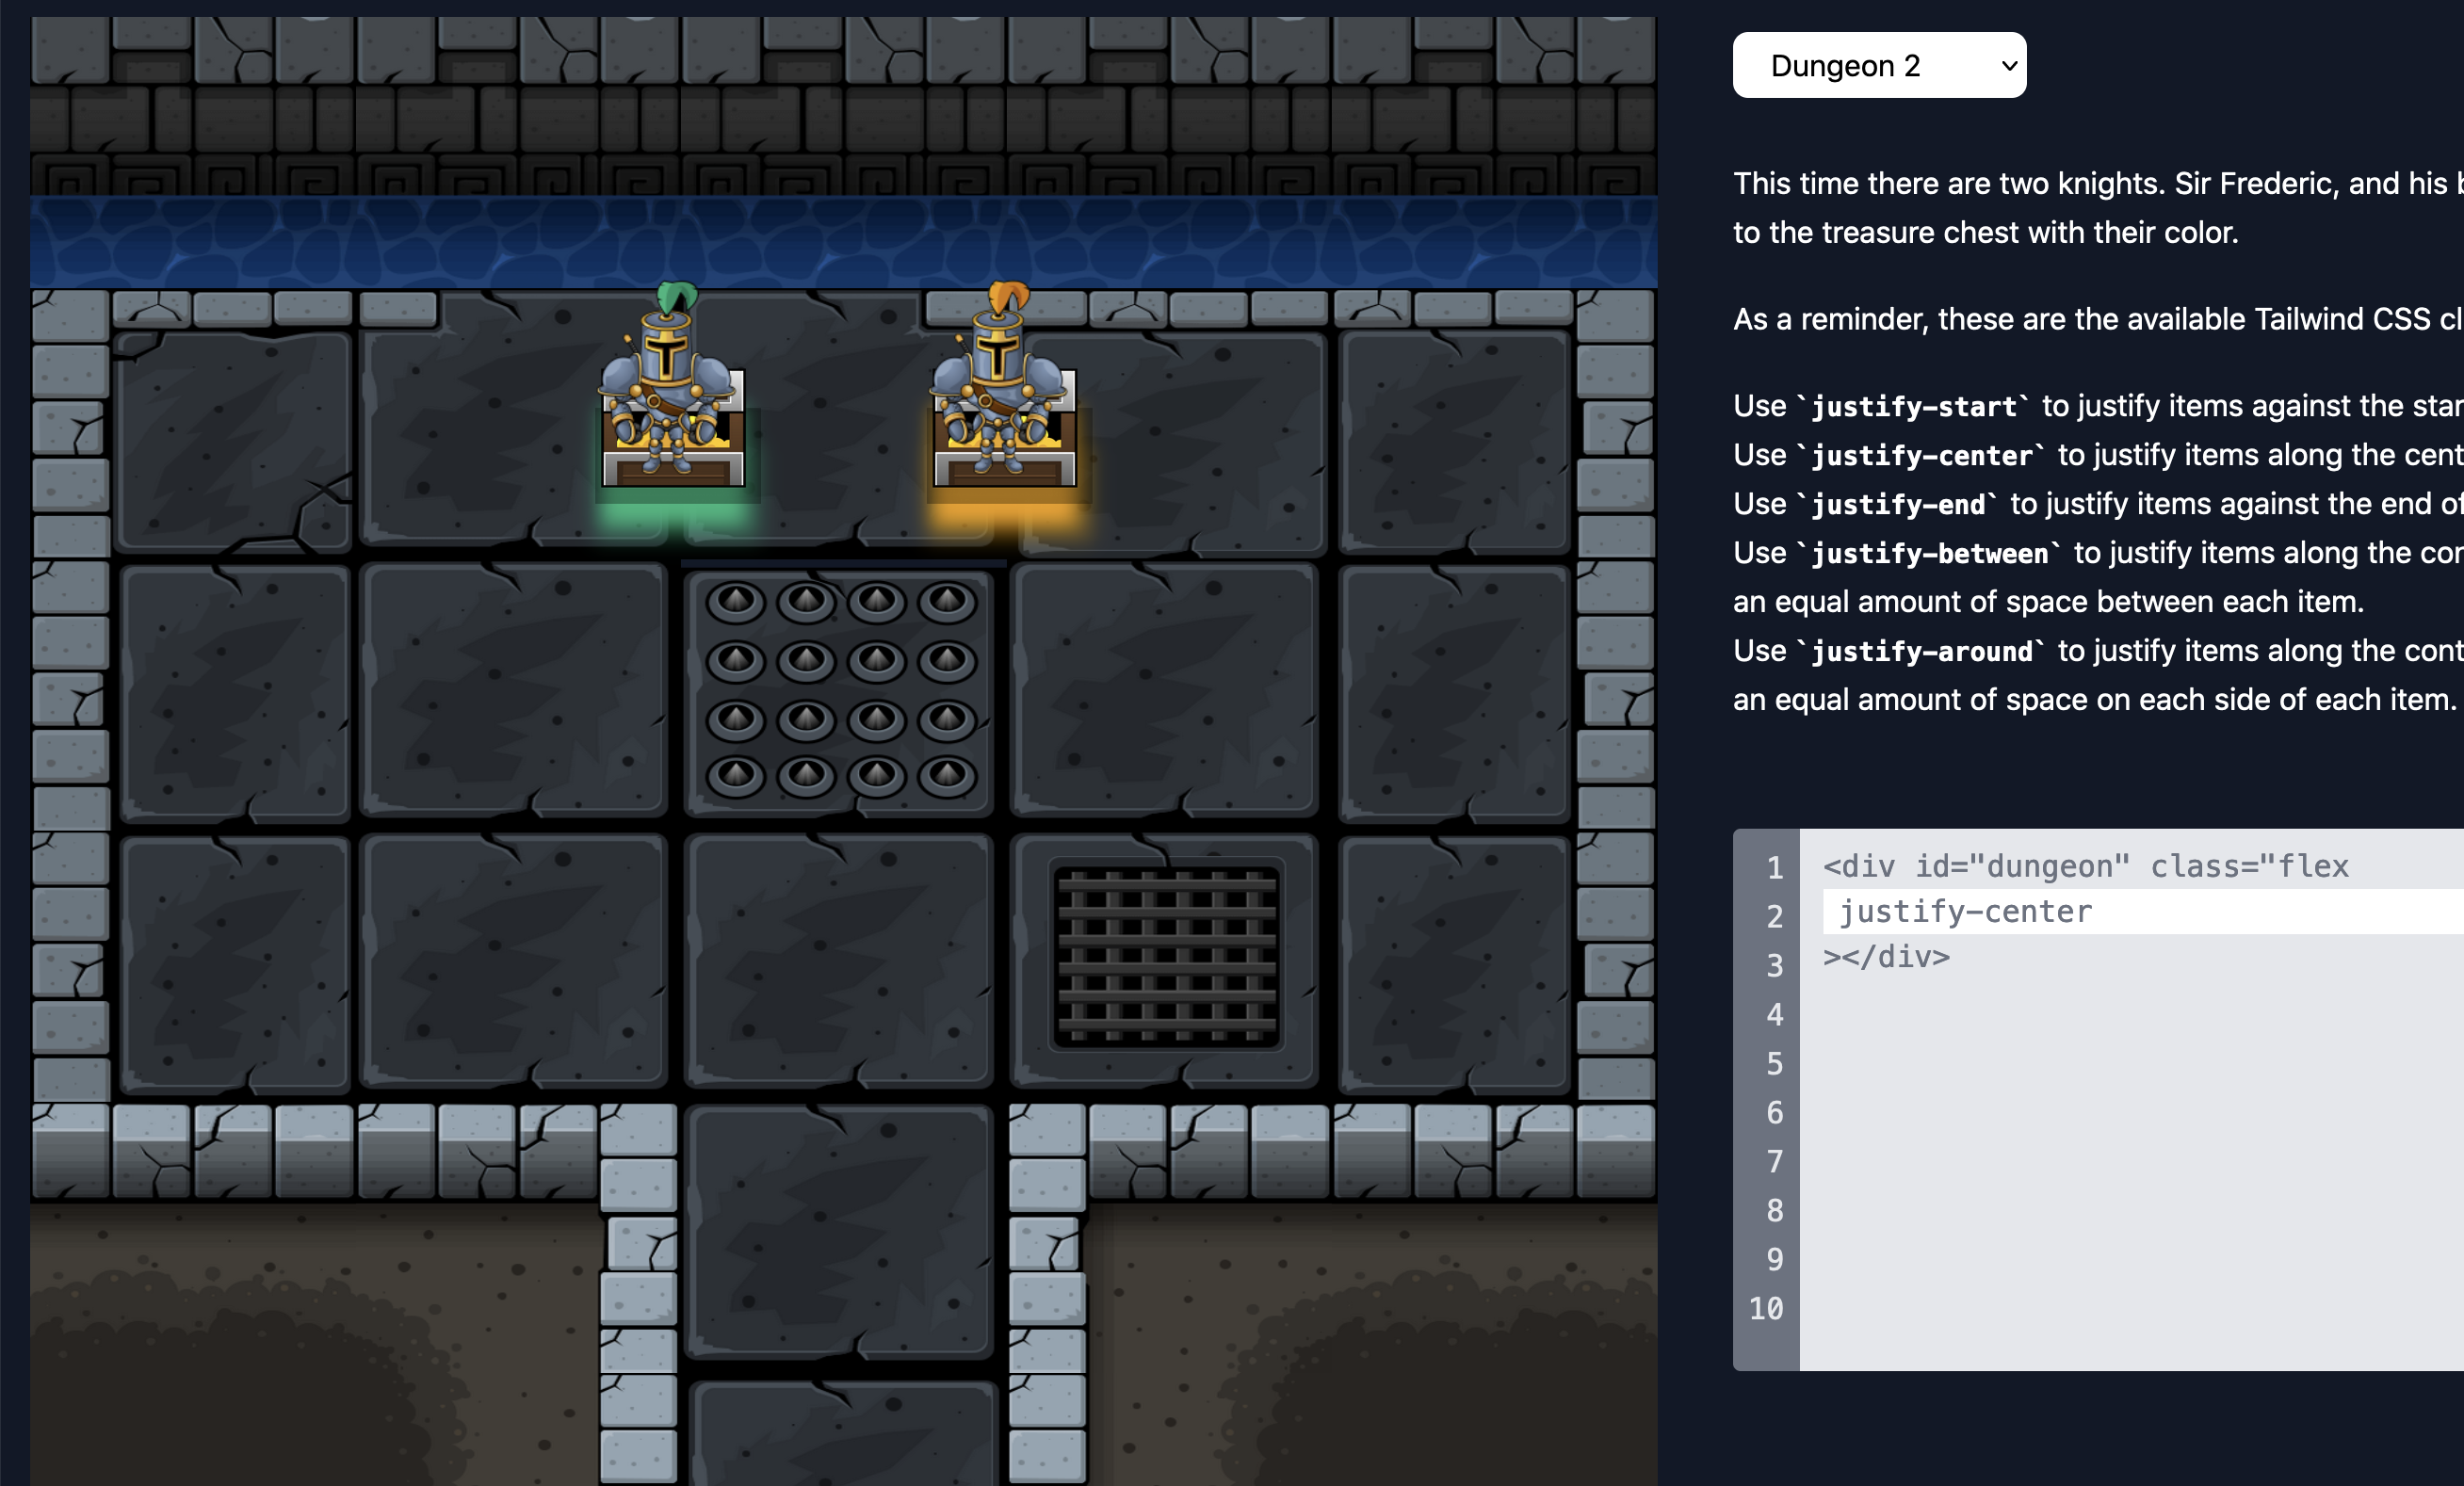 Knights of the Flexbox Dungeon Example